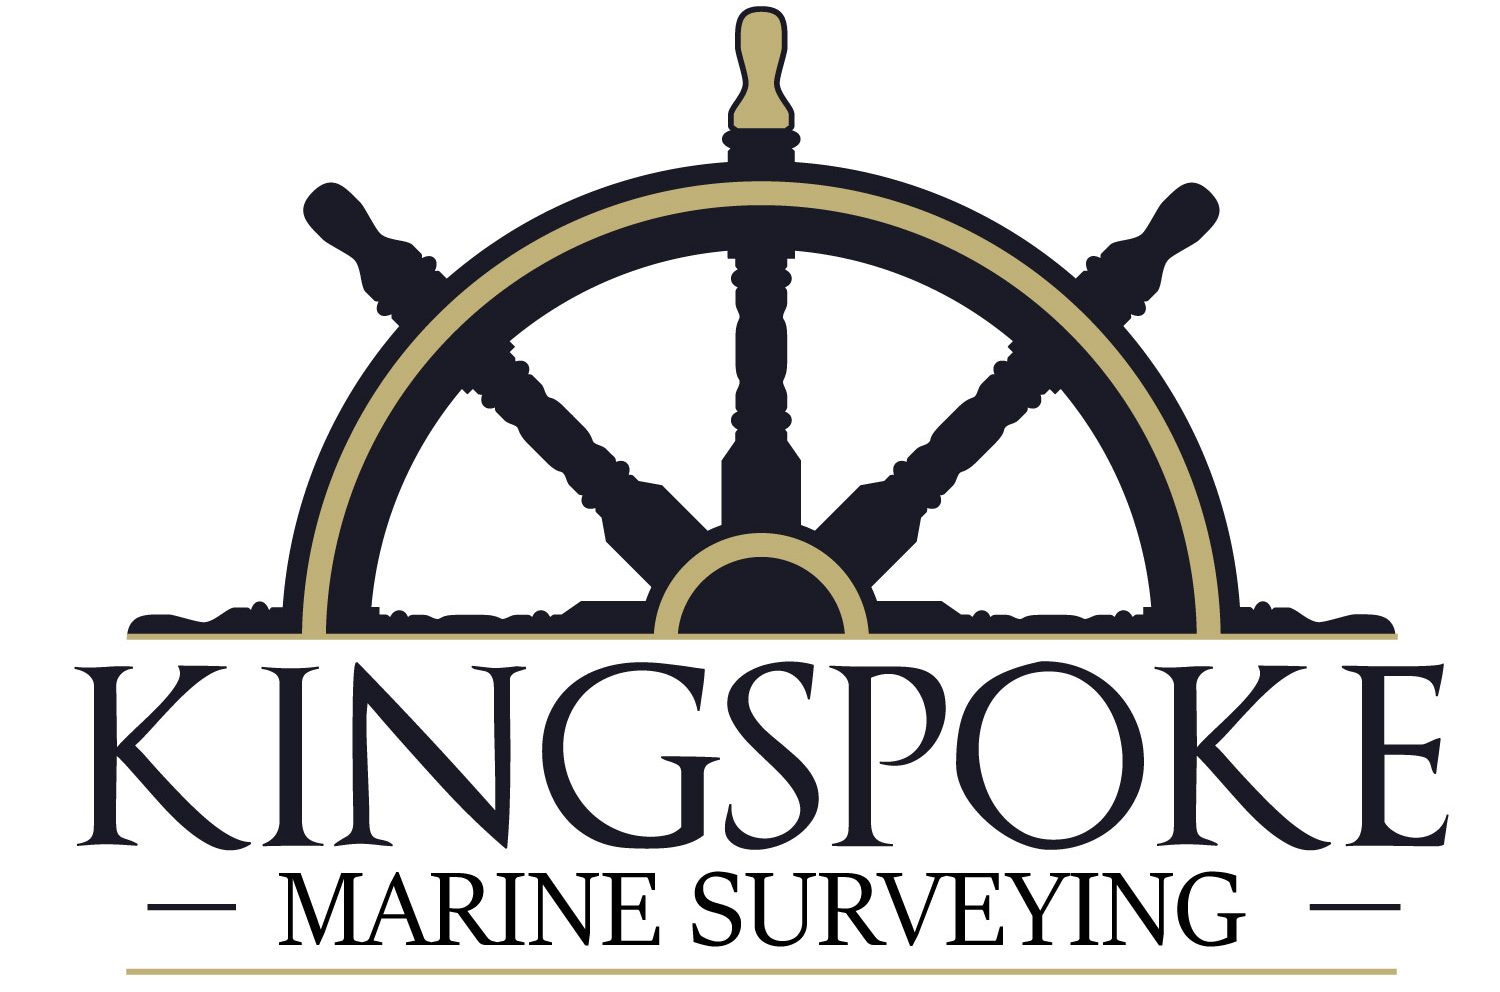 Kingspoke Marine Surveying